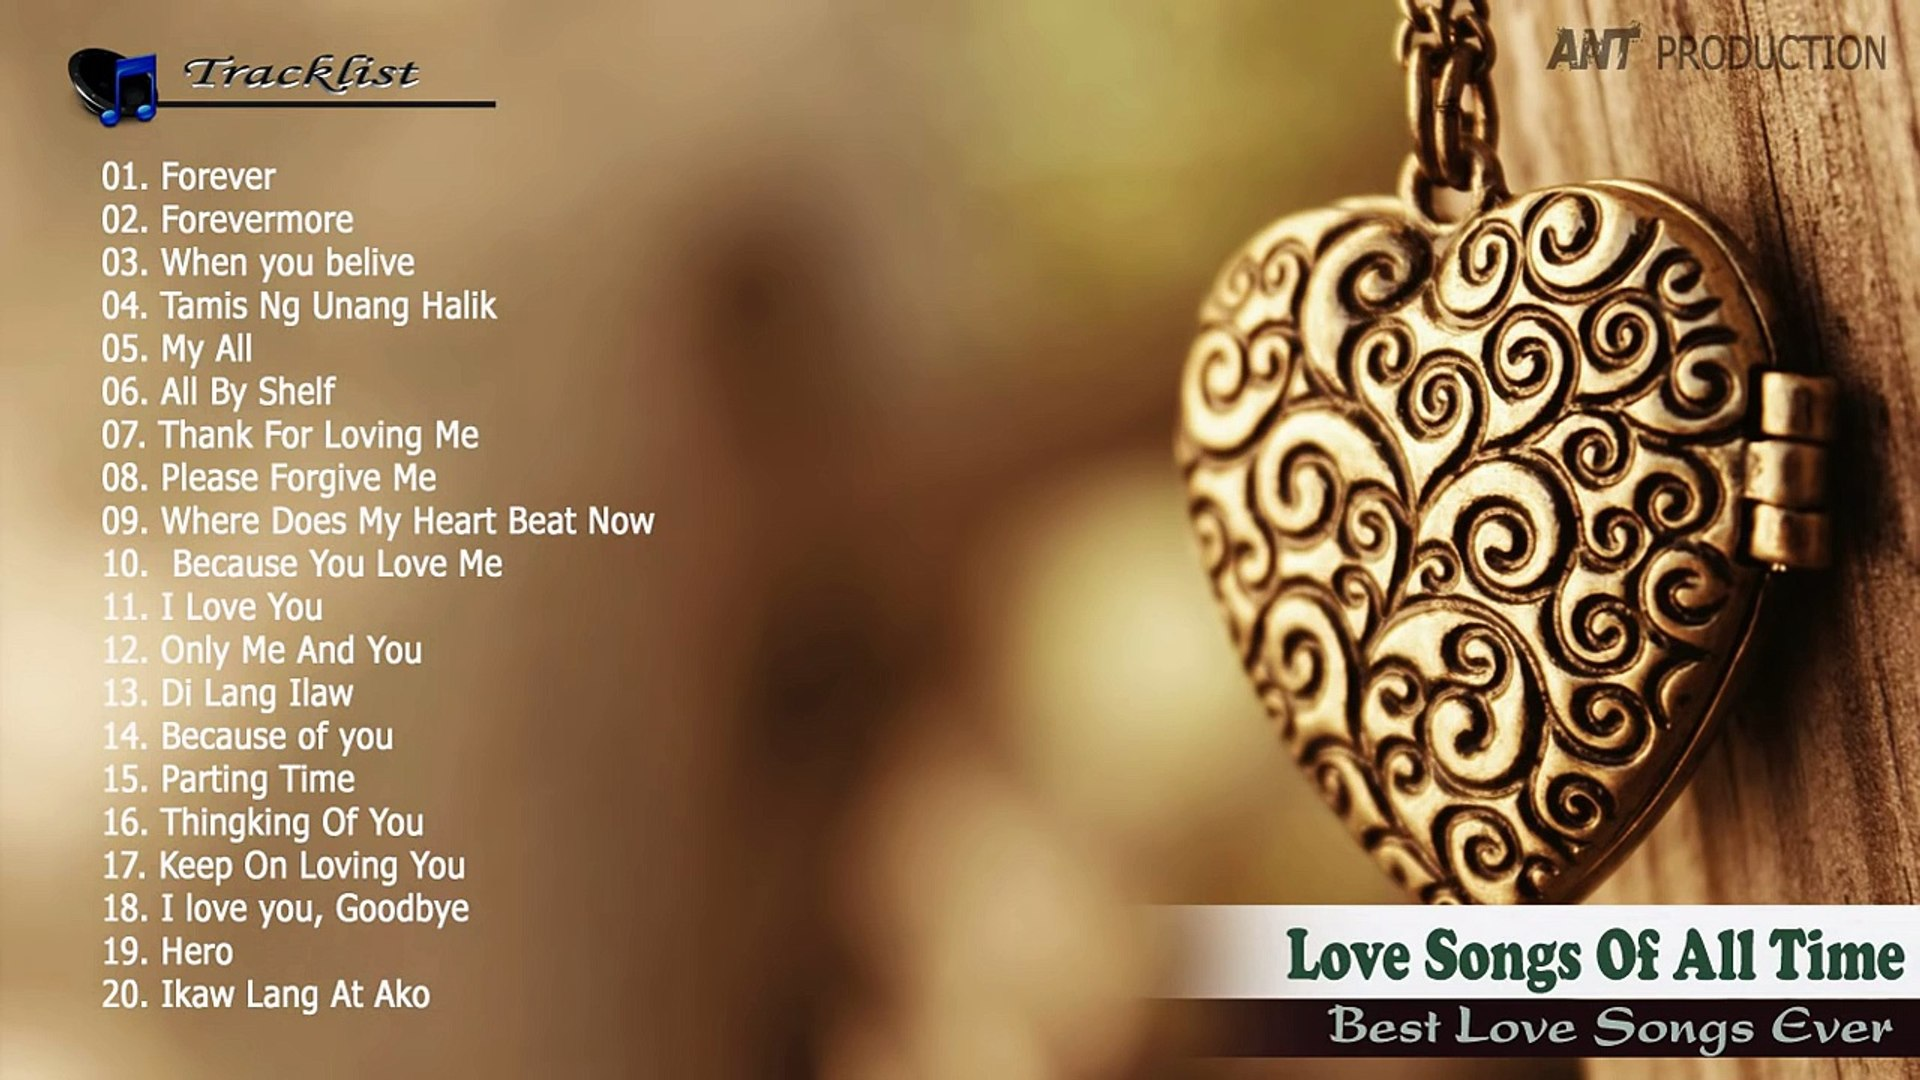 Nonstop love songs Greatets Hits Playlist - Best english love songs  collection